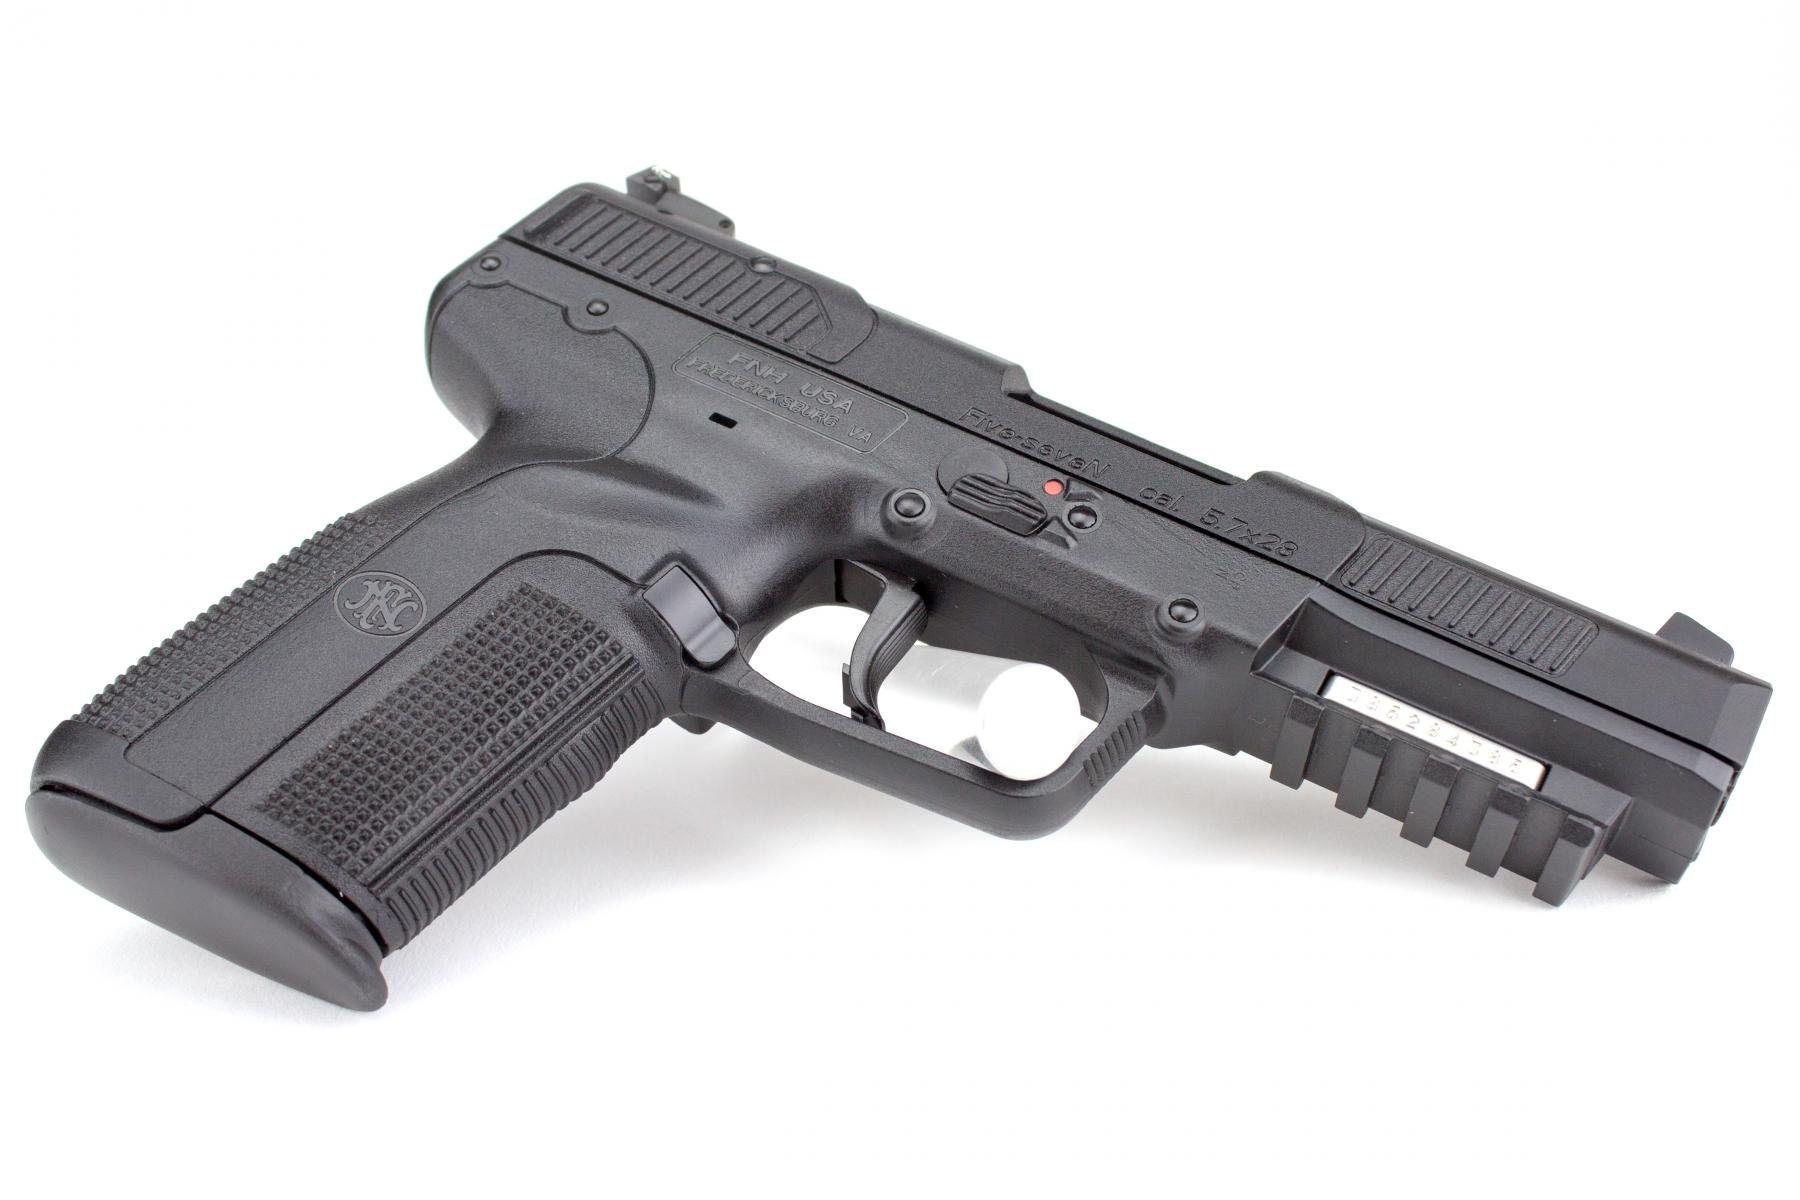 Five-Seven |5.7x28mm 4.8 Inch Barrel Adjustable 3-Dot Sights Black Three 20 Round Magazines